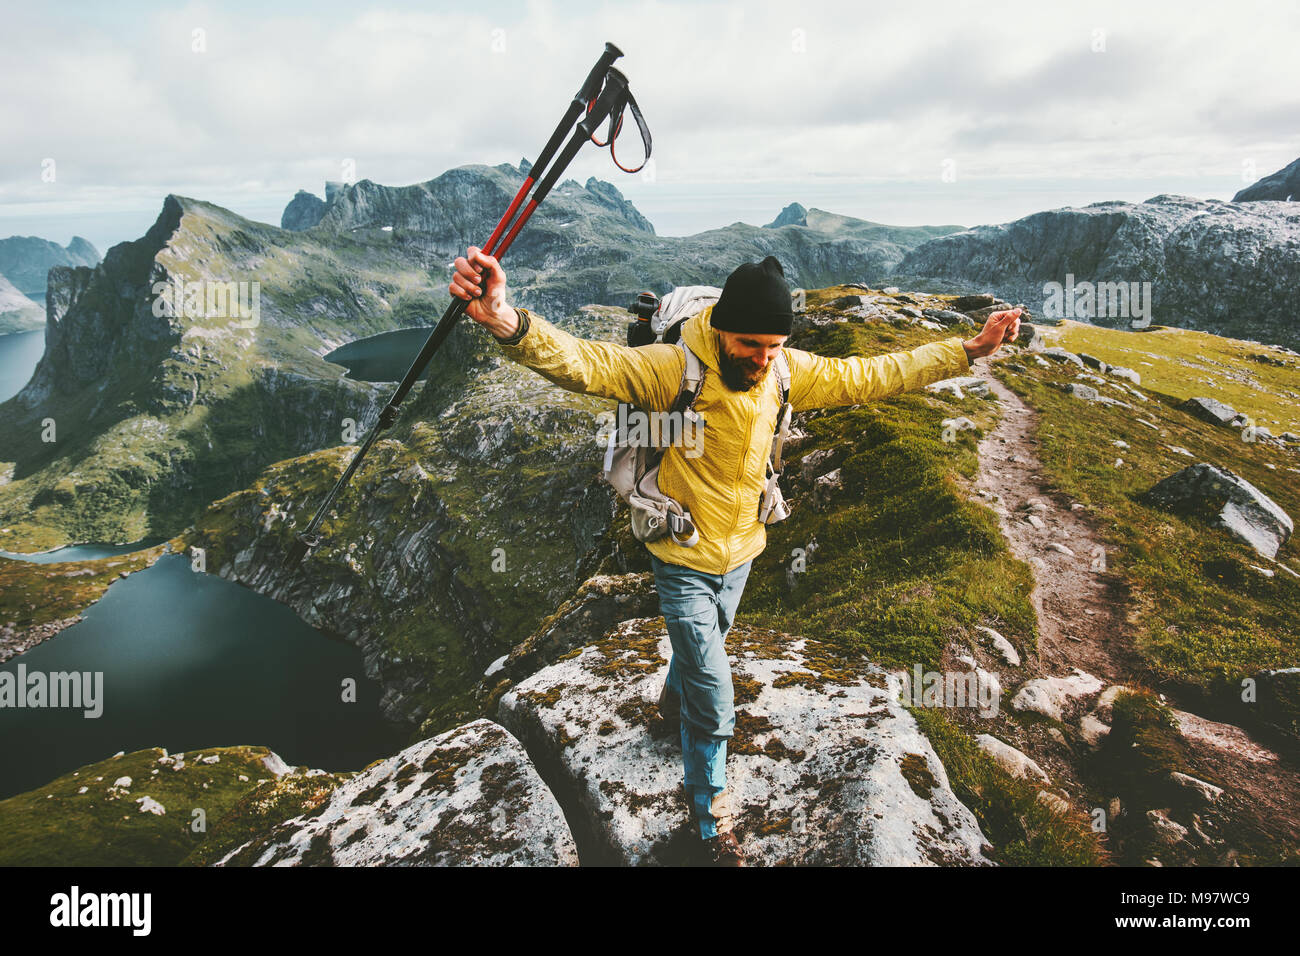 Man adventurer trail running in mountains of Norway Traveling lifestyle adventure success winner concept hiking active summer vacations outdoor - Stock Image